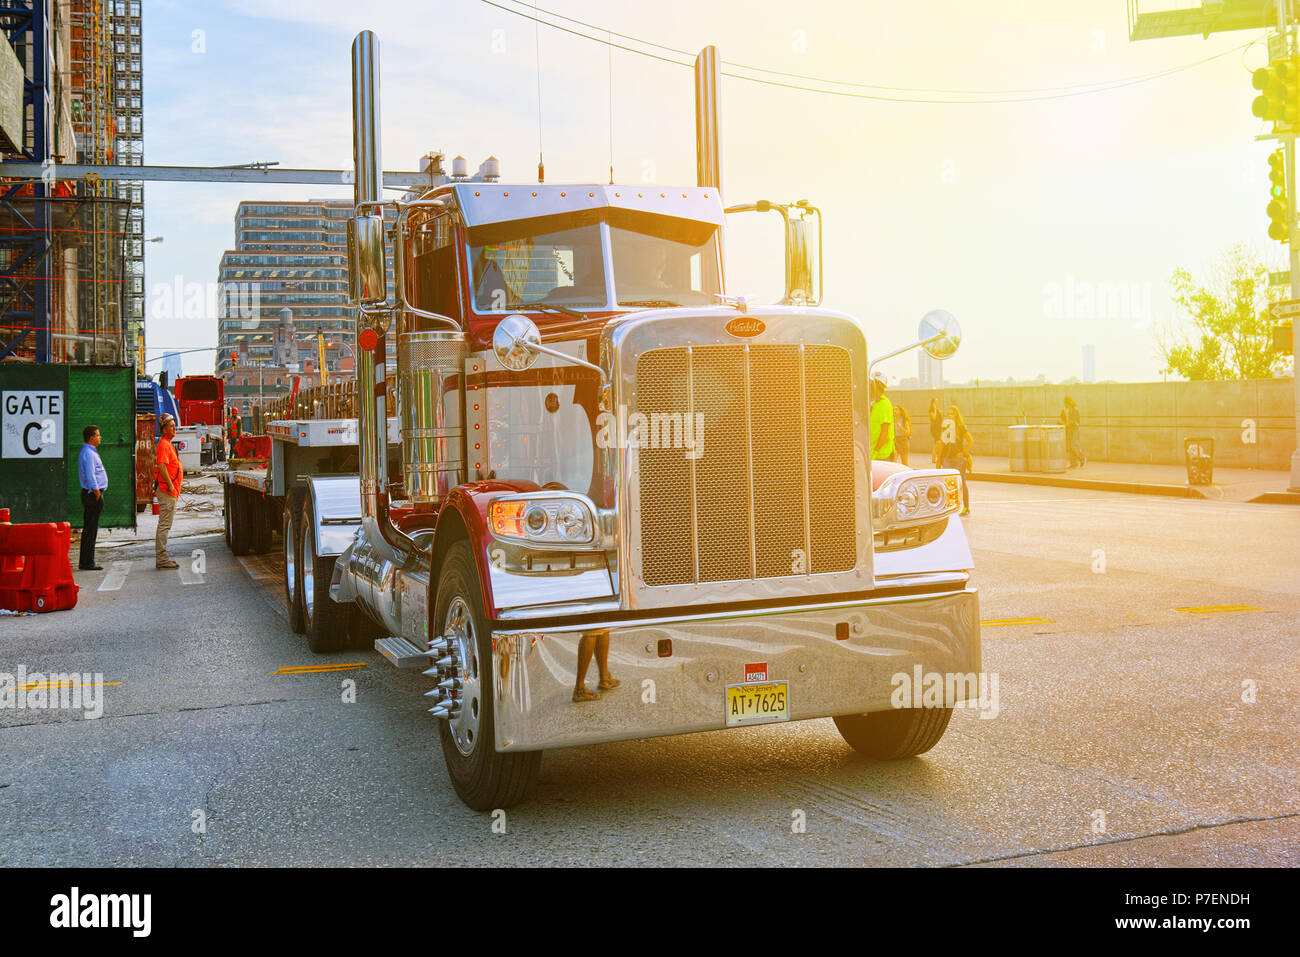 Large American Truck Stock Photos & Large American Truck Stock